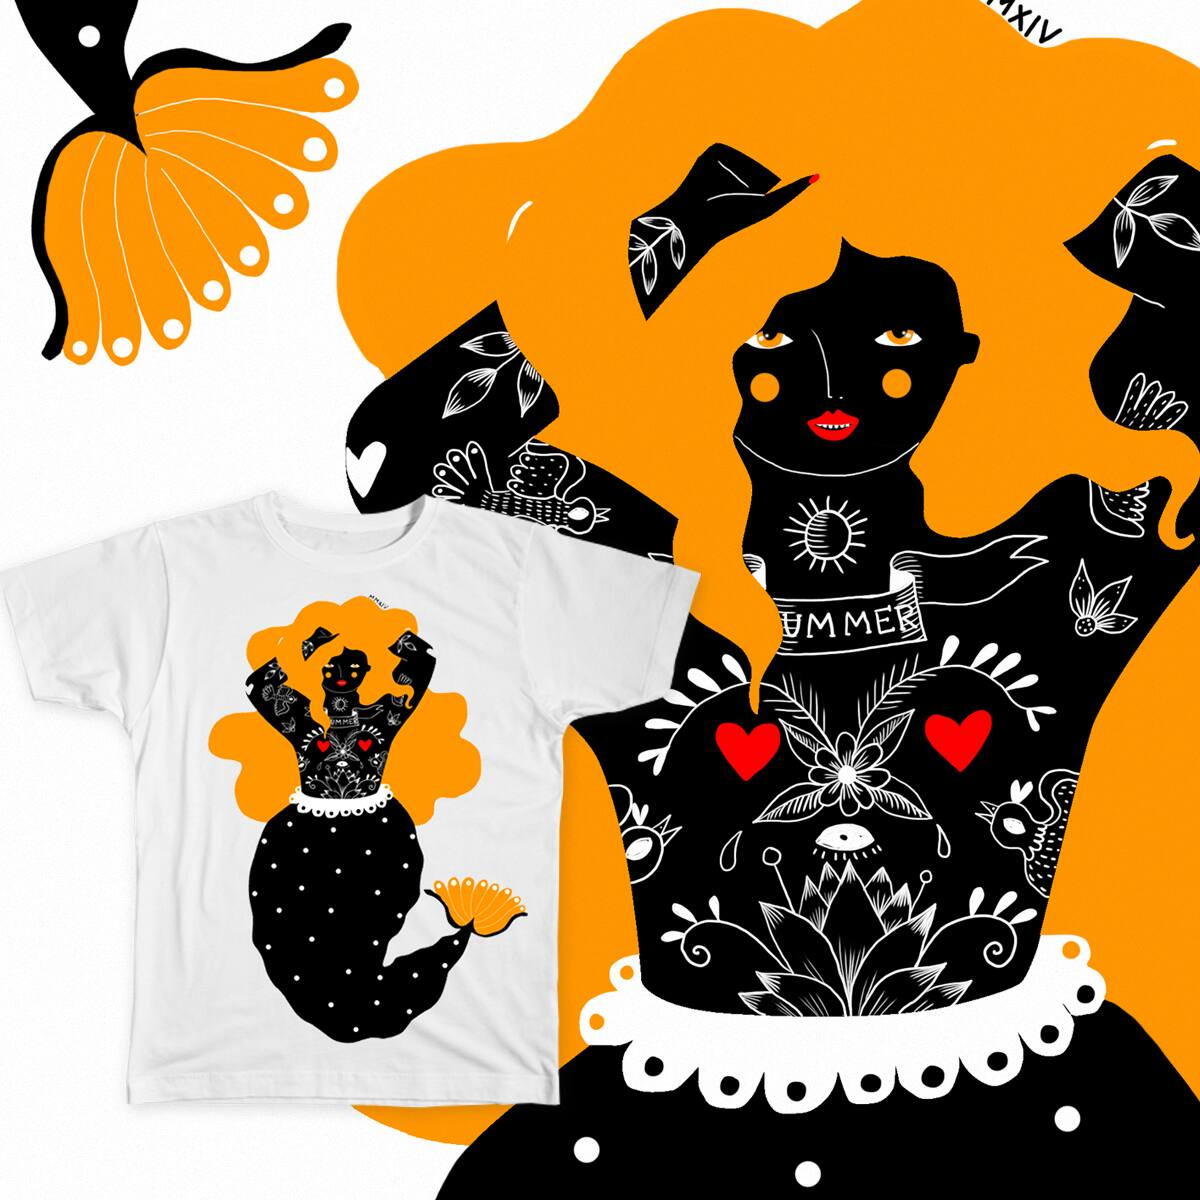 Fever by pink.aitch on Threadless